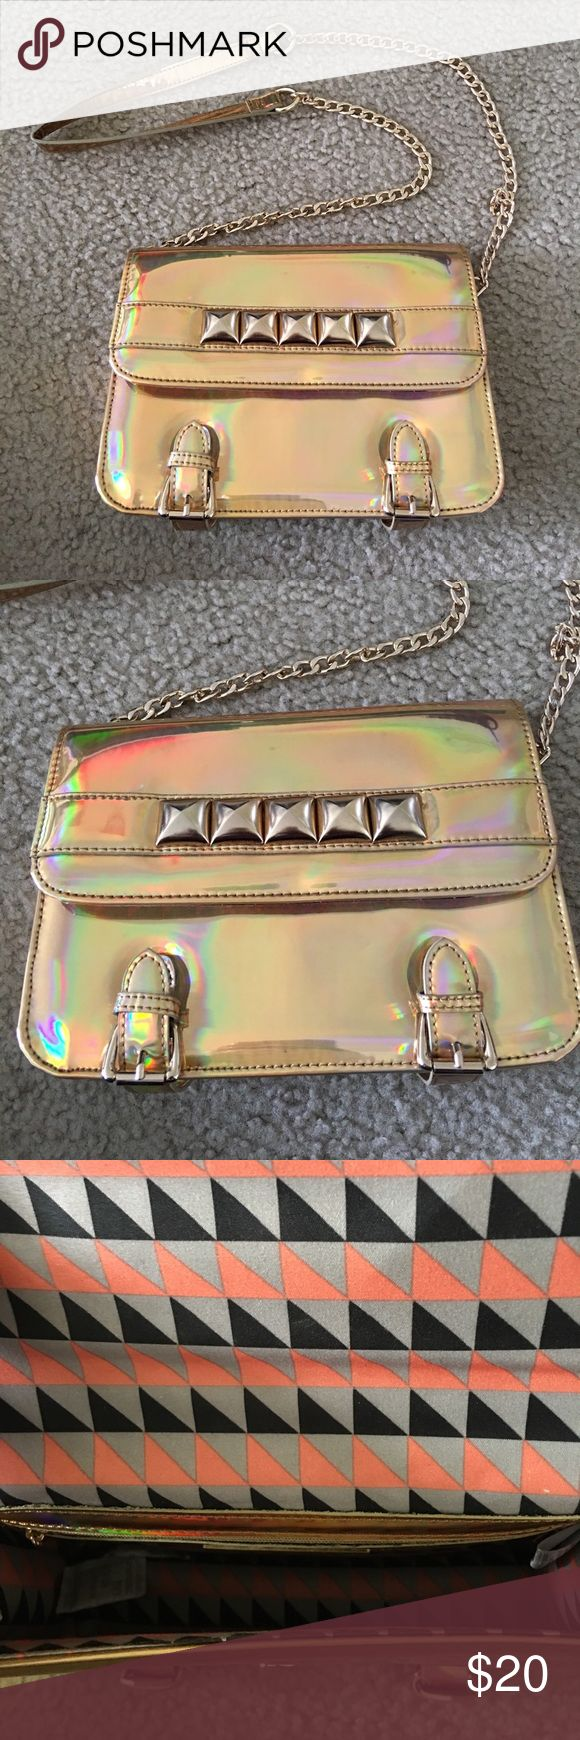 Gold Studded Holographic Crossbody bag Very gently used. Price is negotiable. Features gold hardware. Purchased at DSW shoe warehouse. Street Level Bags Crossbody Bags